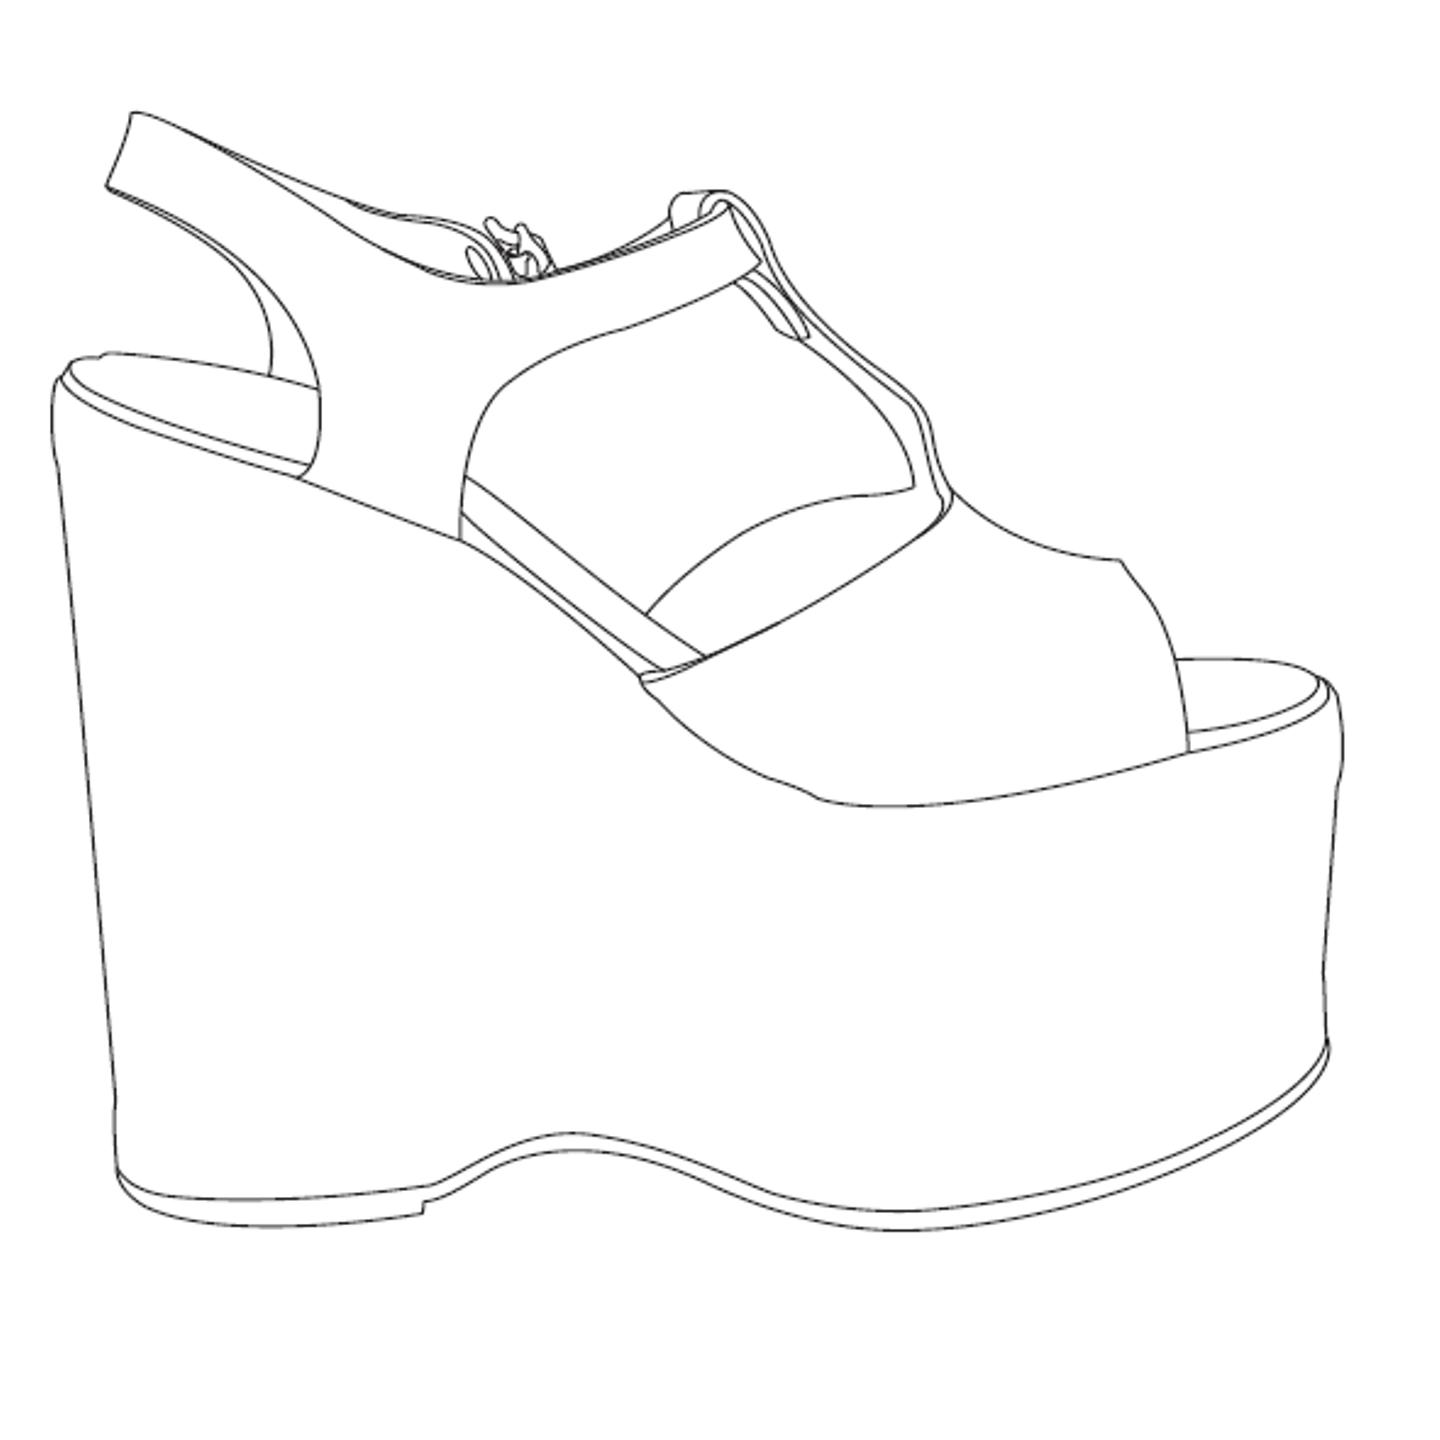 Shoe Drawing Template At Getdrawings